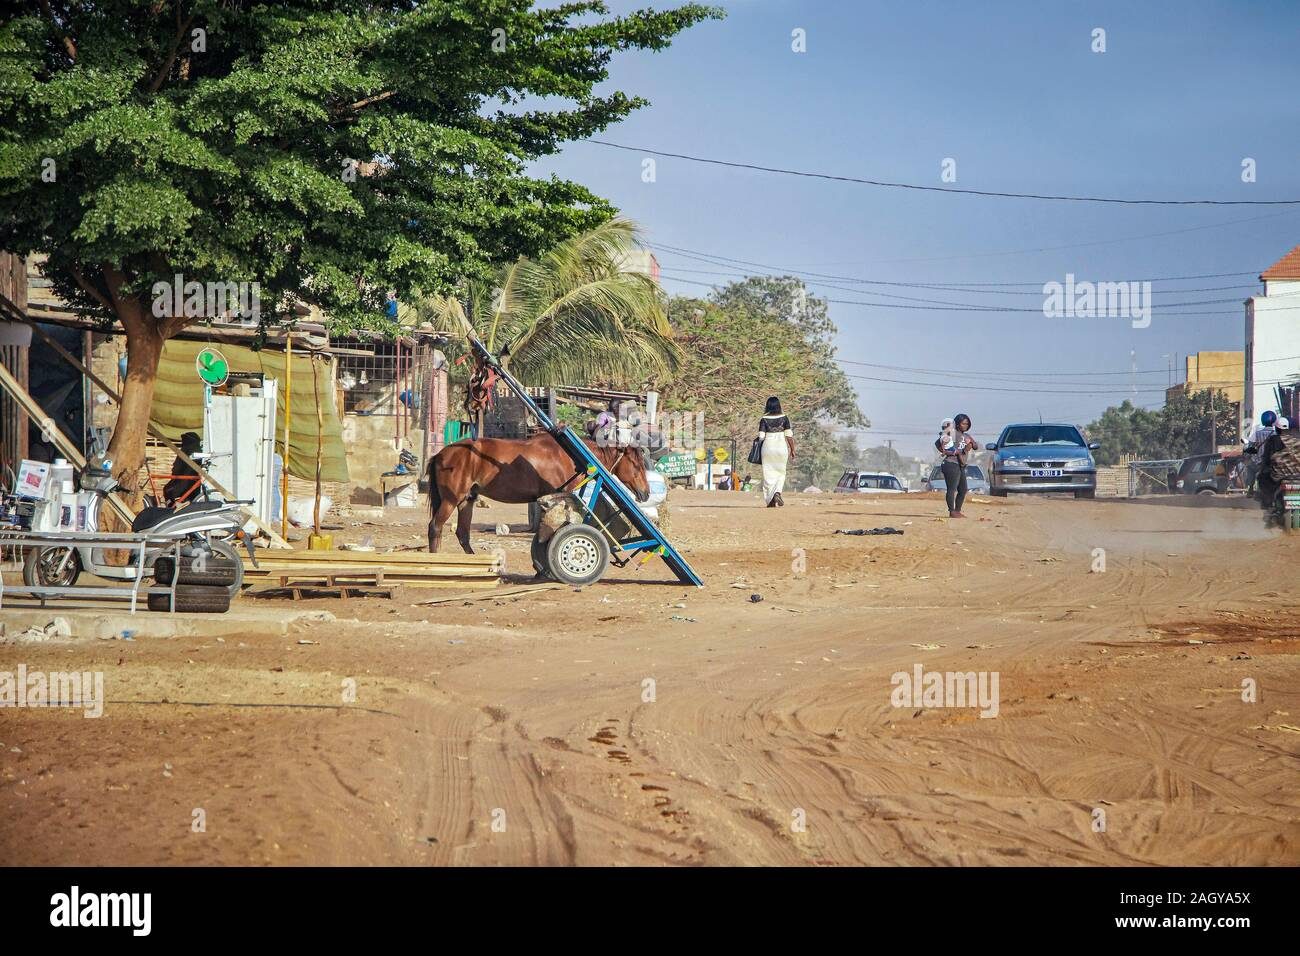 Mbour, SENEGAL - APR 26, 2019: Unidentified Senegalese woman with baby are walking down a dusty road in the middle of the city. There's a car on the Stock Photo